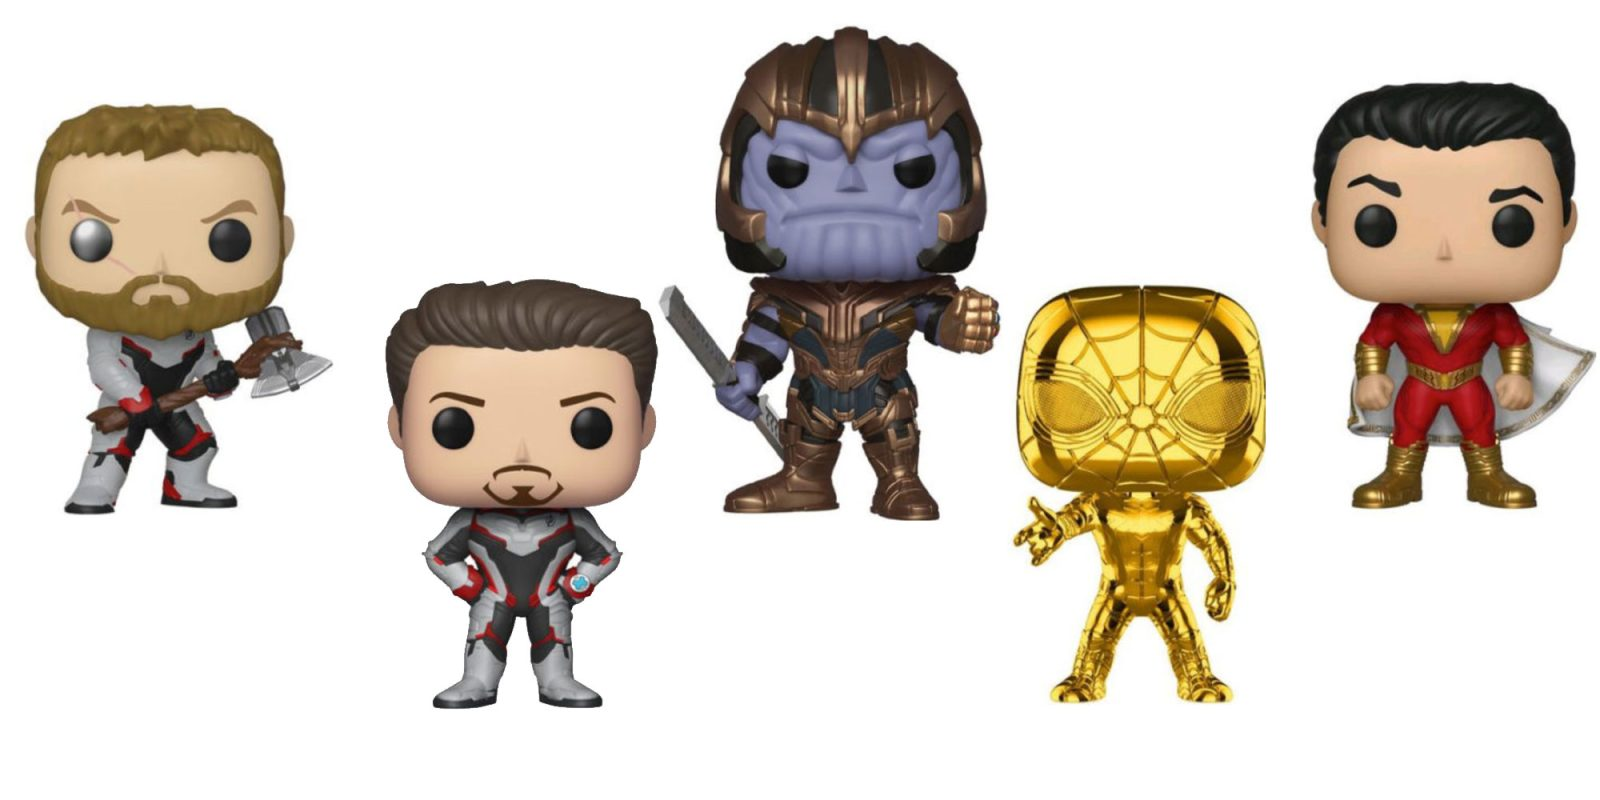 Barnes & Noble Funko POP! sale offers 3 for $20 or 9 for $50